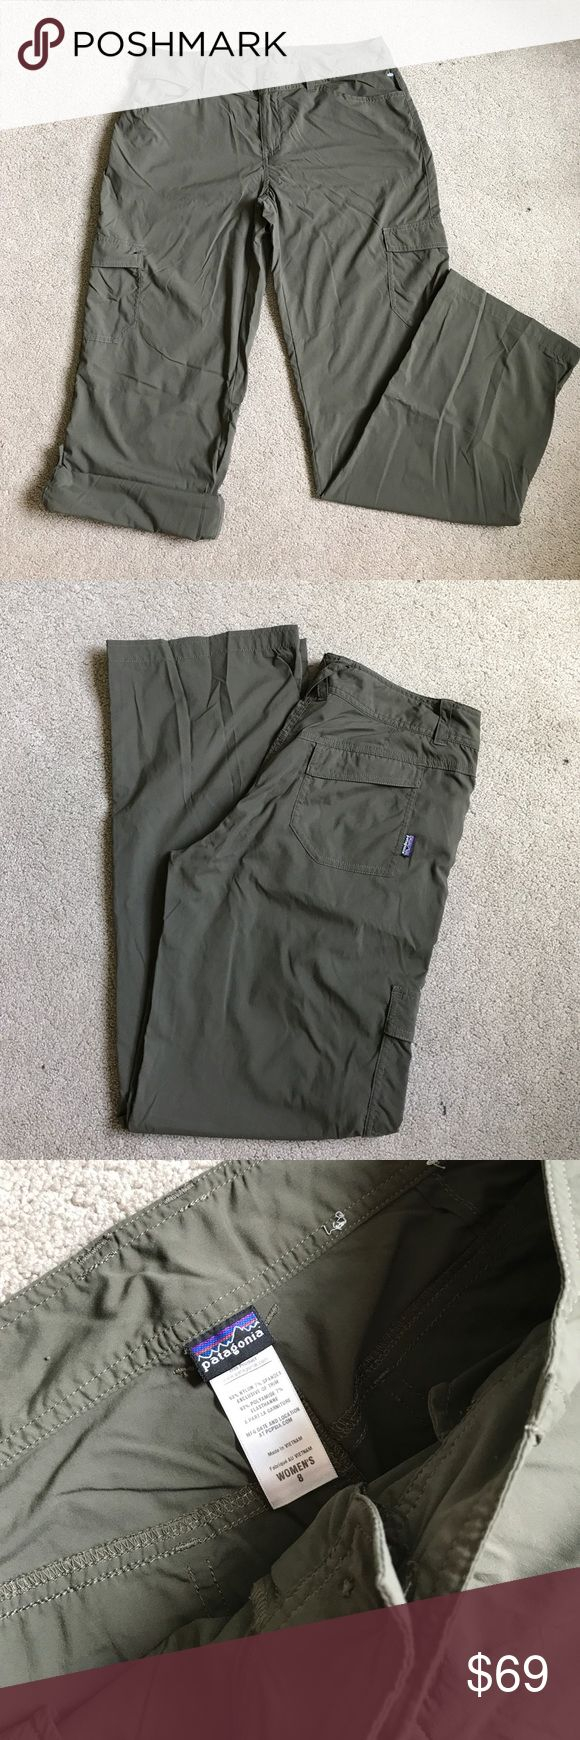 Patagonia Pants & Short Size 8 Excellent Condition 😍 NO TRADE 🚫 No model 💃🏻 Patagonia Pants